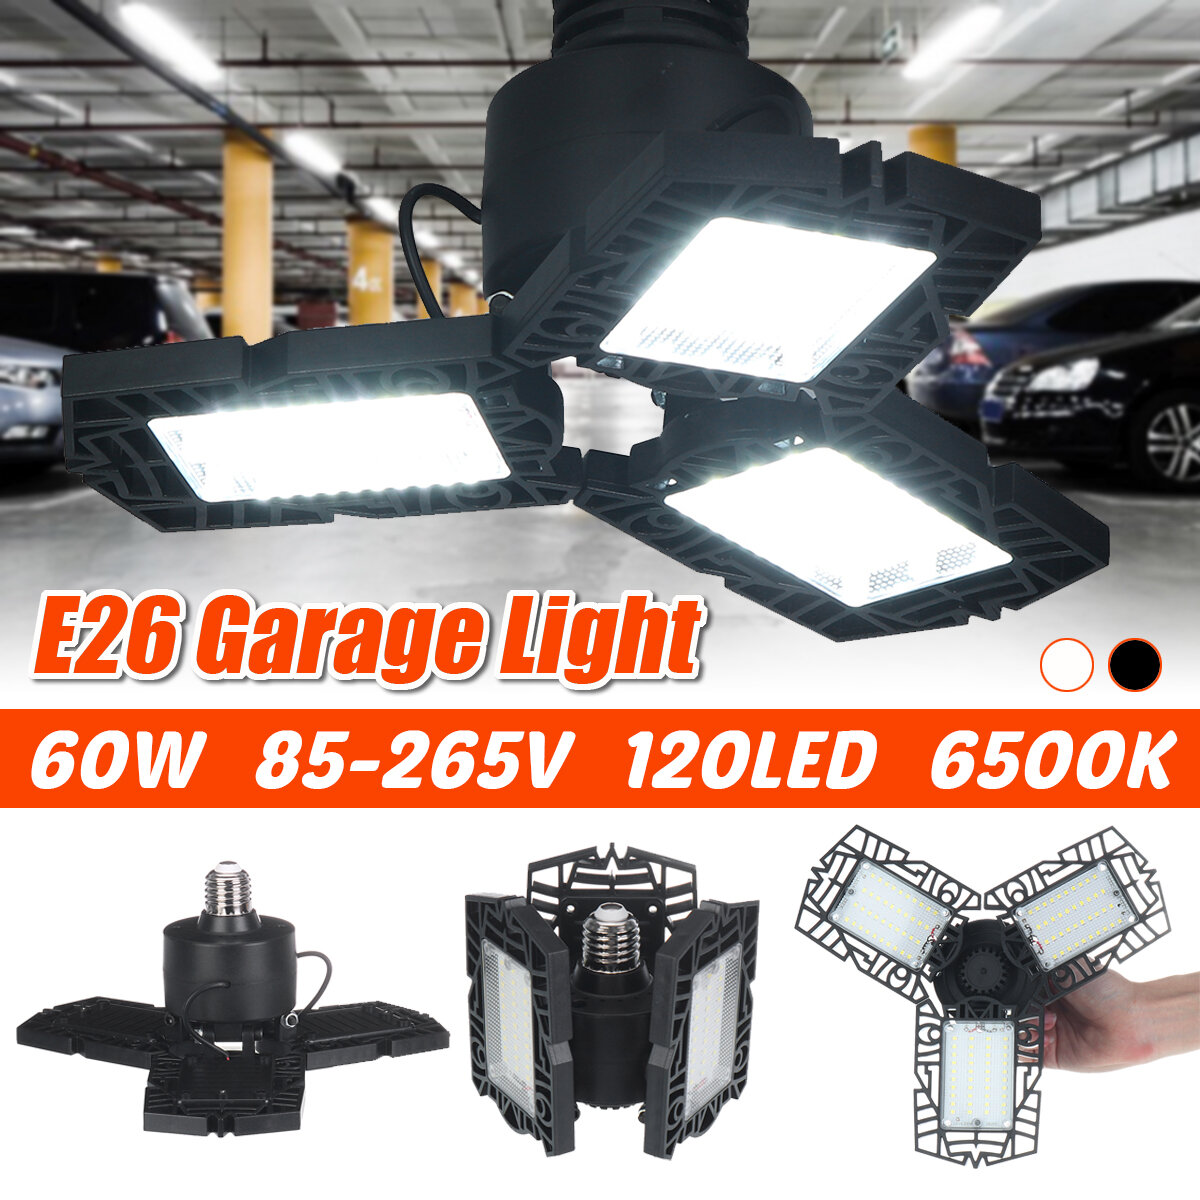 E26 60W 120LED Garage Light Bulb Foldable Fan Industrial Workshop Ceiling Lamp 85-265V